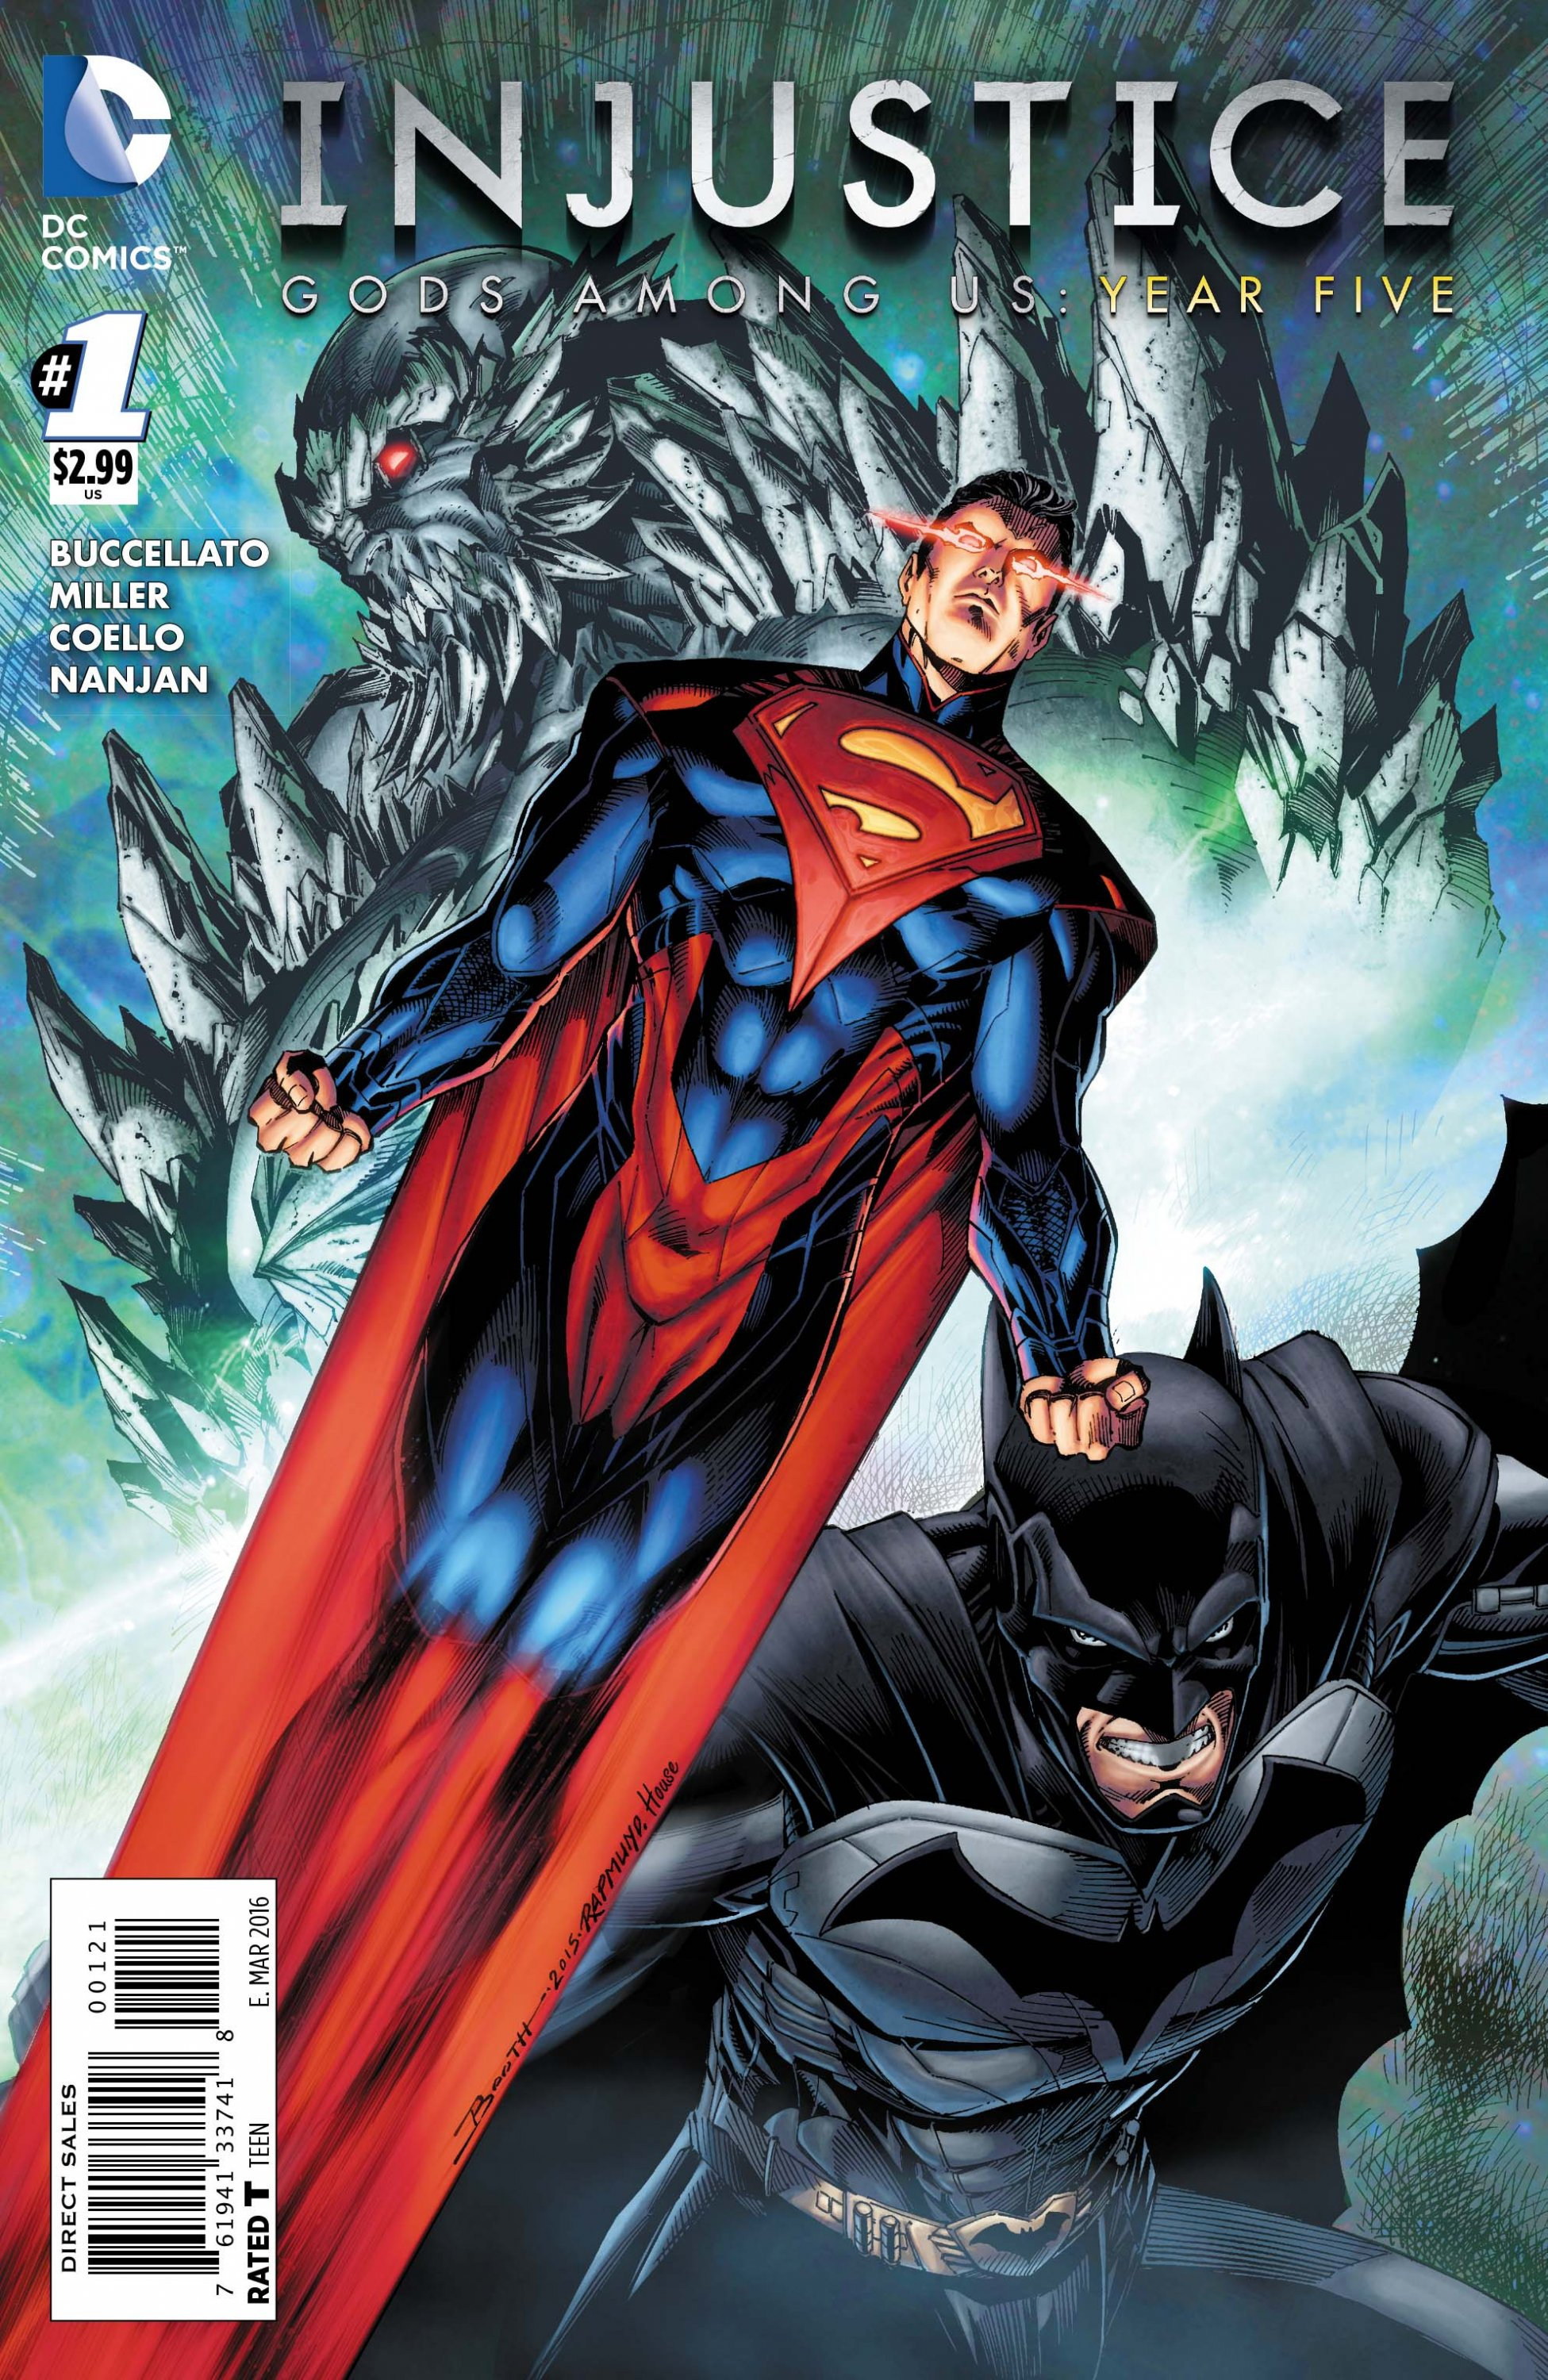 Injustice - Gods Among Us: Year Five 001 (March 2016) (variant)